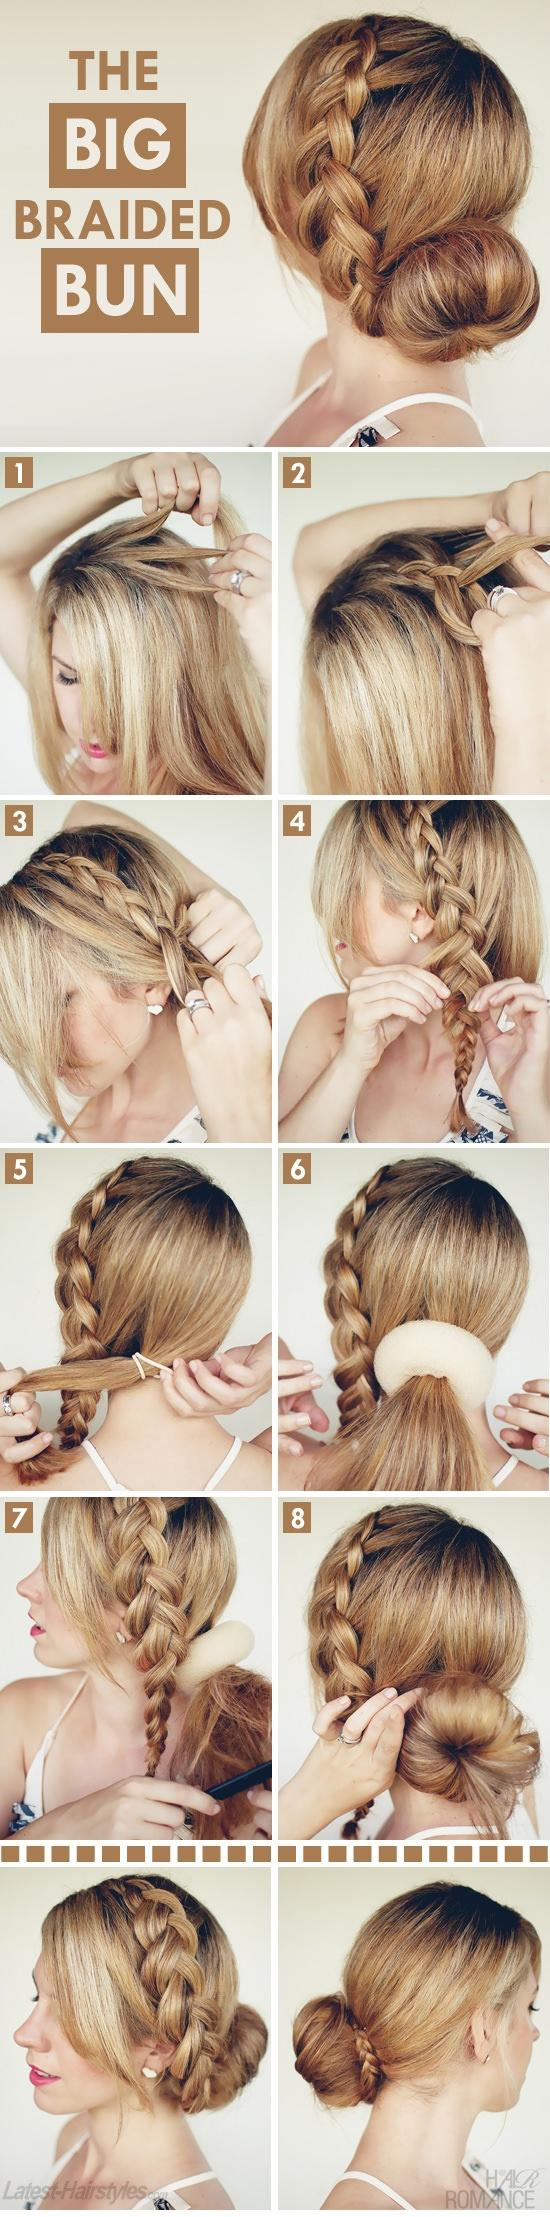 5 Step by Step Hair Tutorials You Can Do for the Holidays